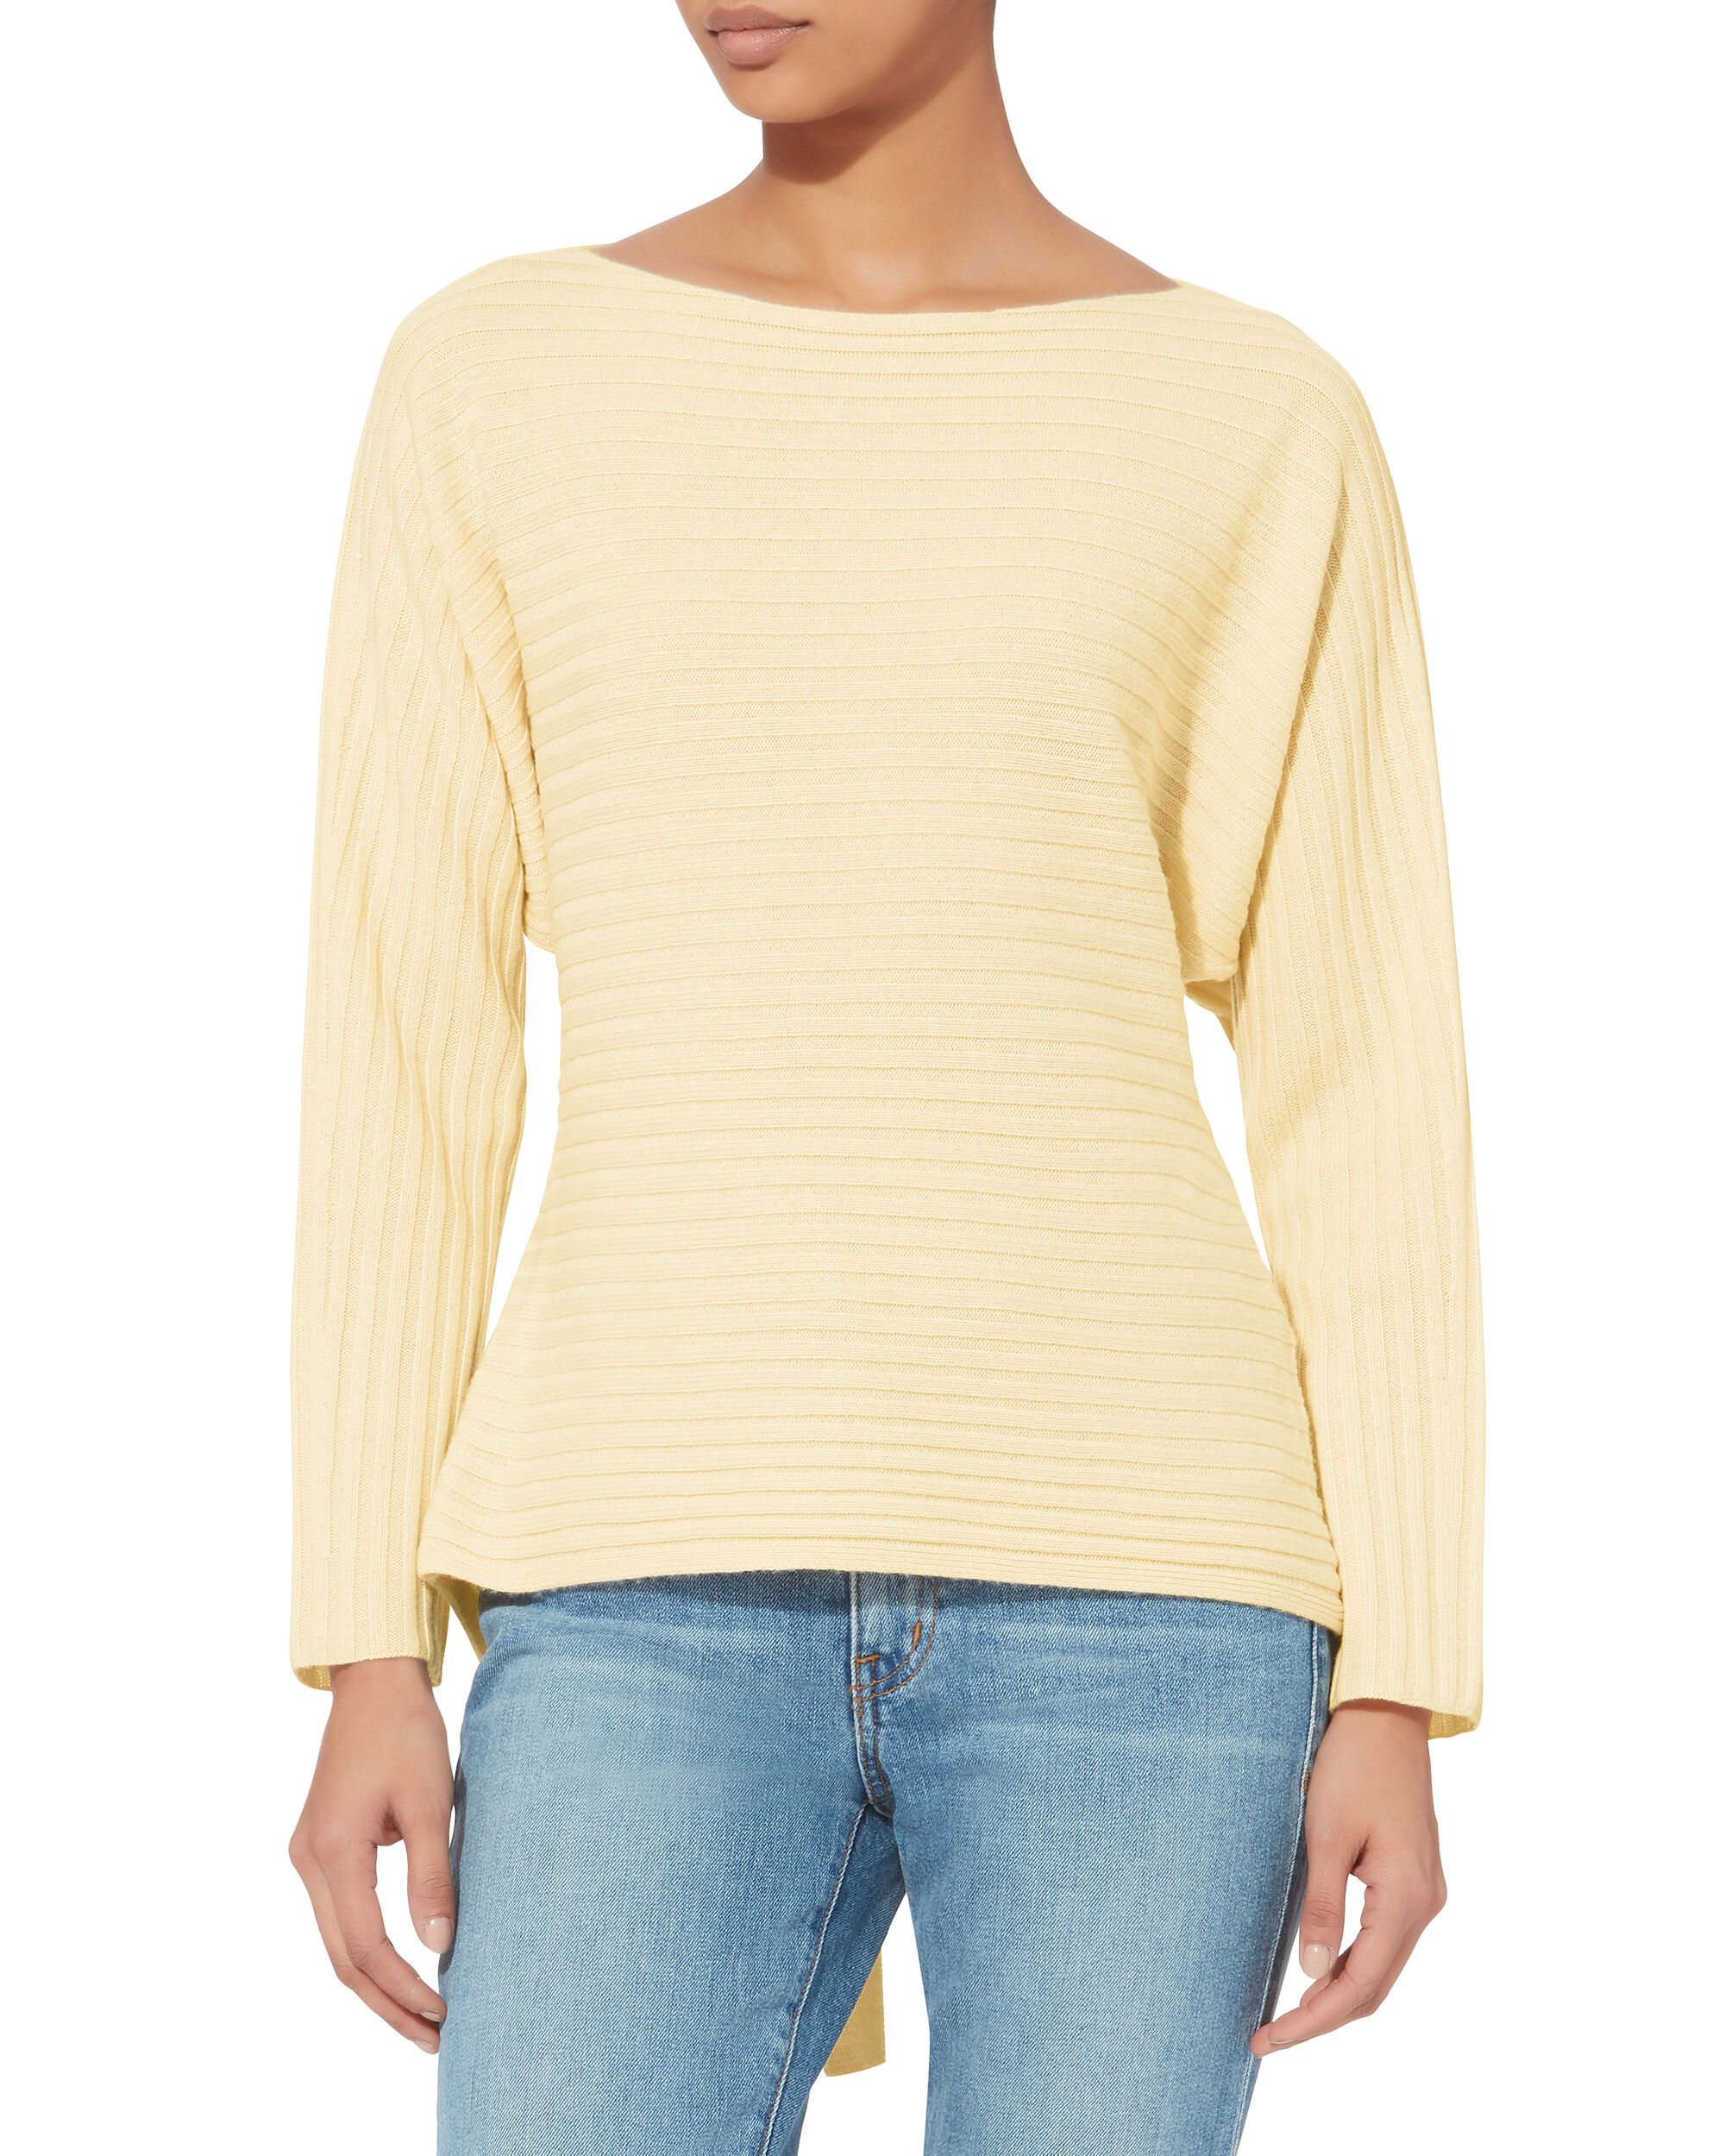 Dolman Tie Back Sweater, YELLOW, hi-res